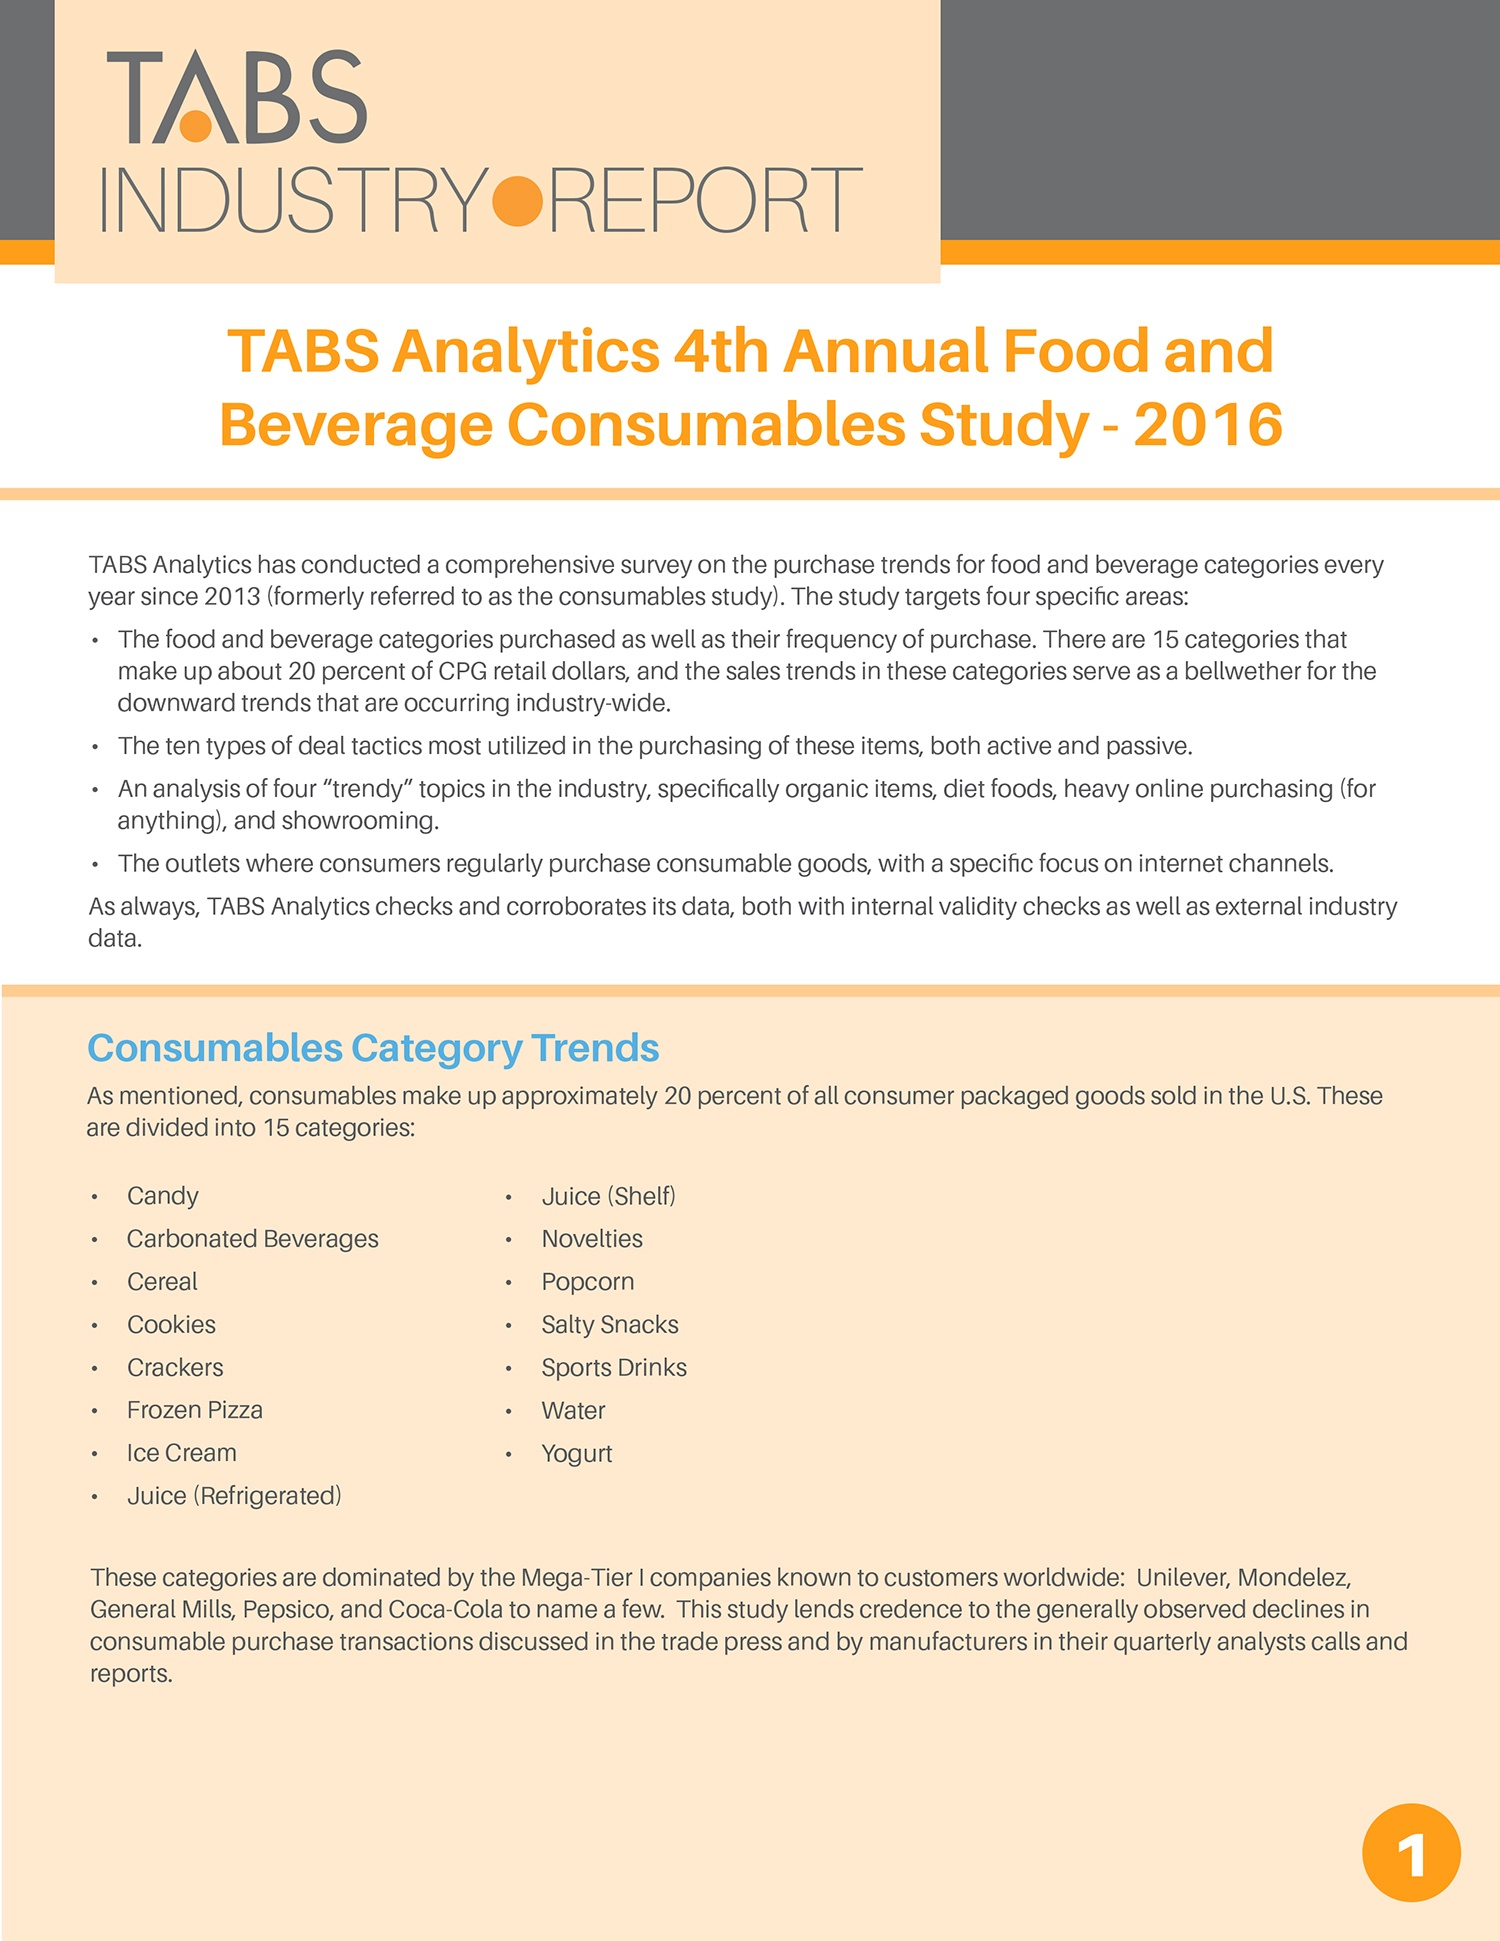 2016 4th Annual Food & Beverage Consumable Study